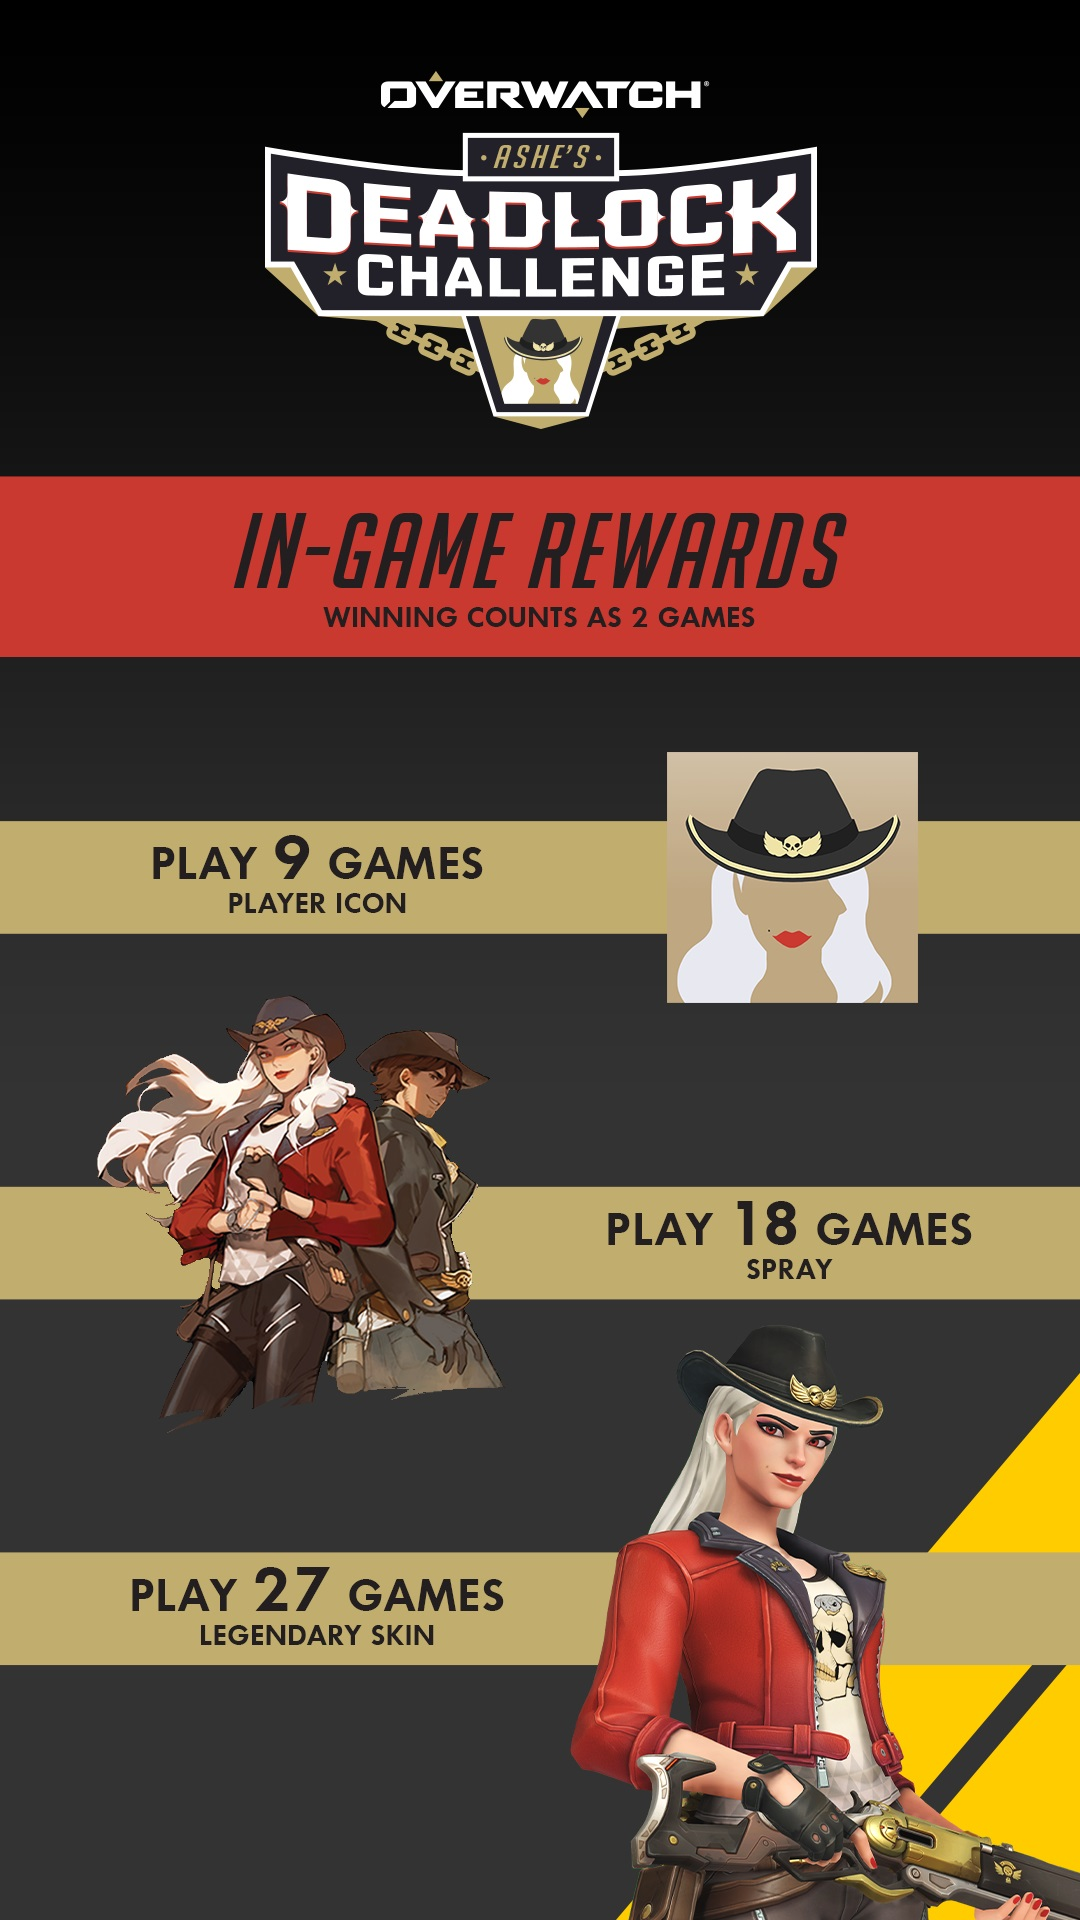 Earn in-game rewards during Ashe's Deadlock Challenge by playing 9, 18, and 27 games.